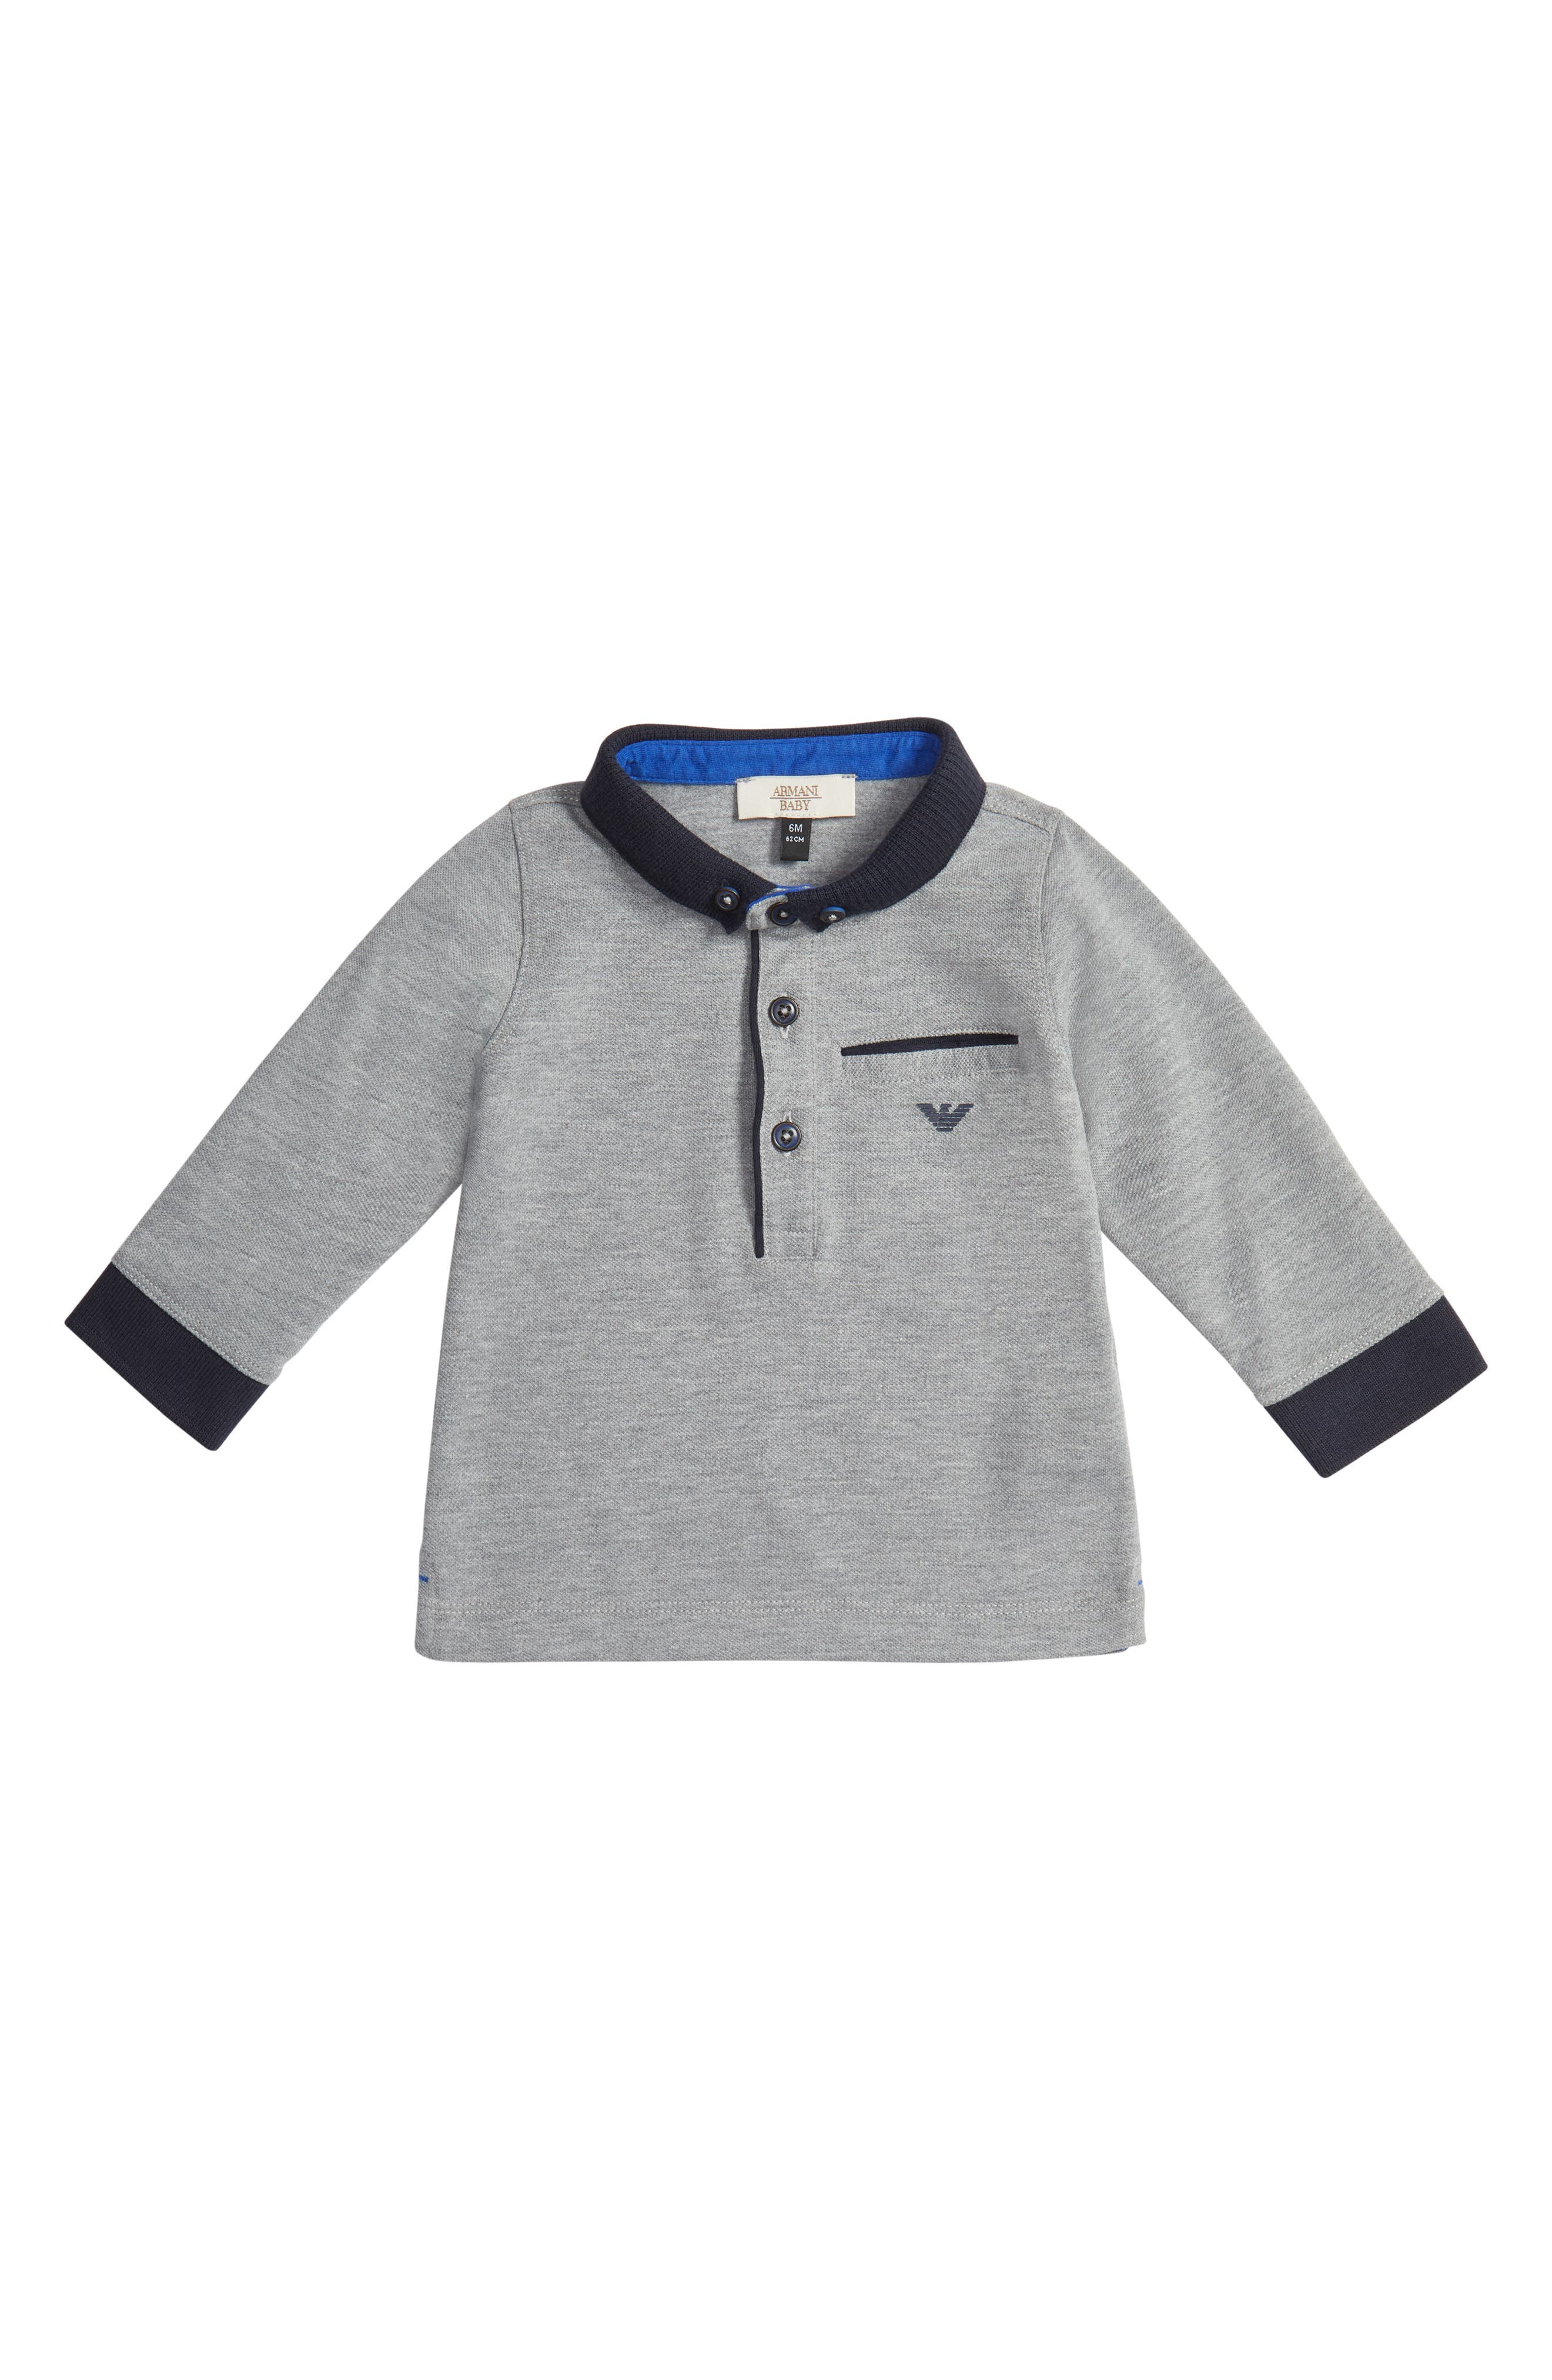 Alternate Image 1 Selected - Armani Junior Long Sleeve Polo (Baby Boys)